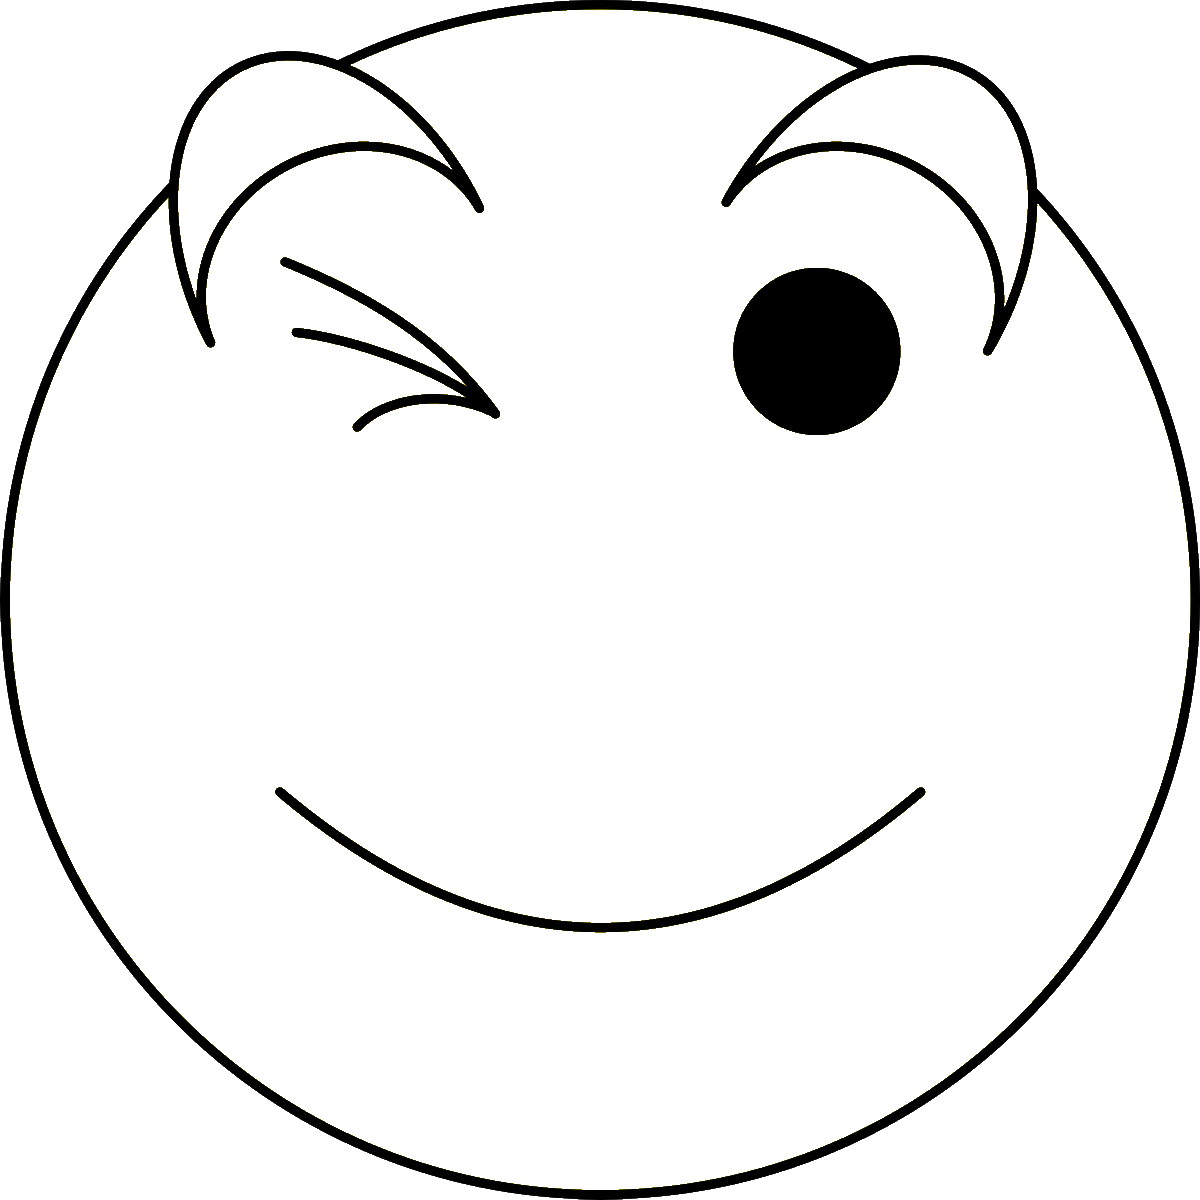 Coloring Pages Emojis : Emoji cool coloring pages sketch page